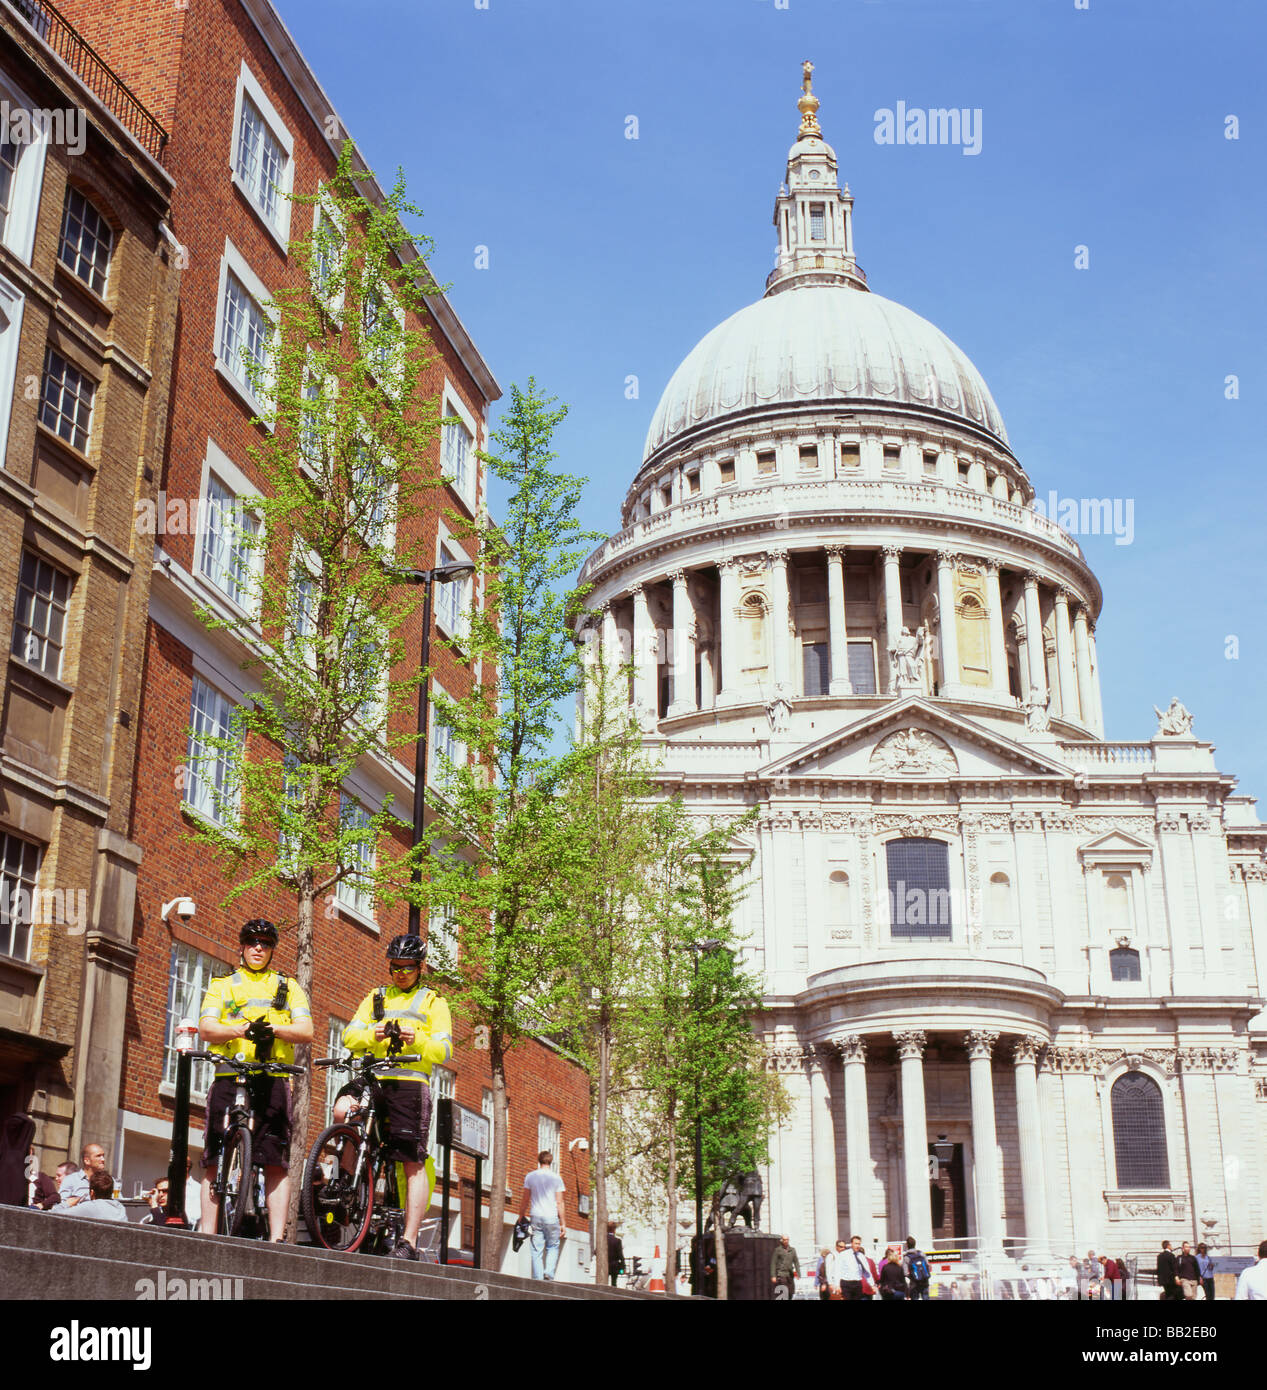 Community support police officers on bicycles near St. Paul's Cathedral, London England UK 2009 Stock Photo